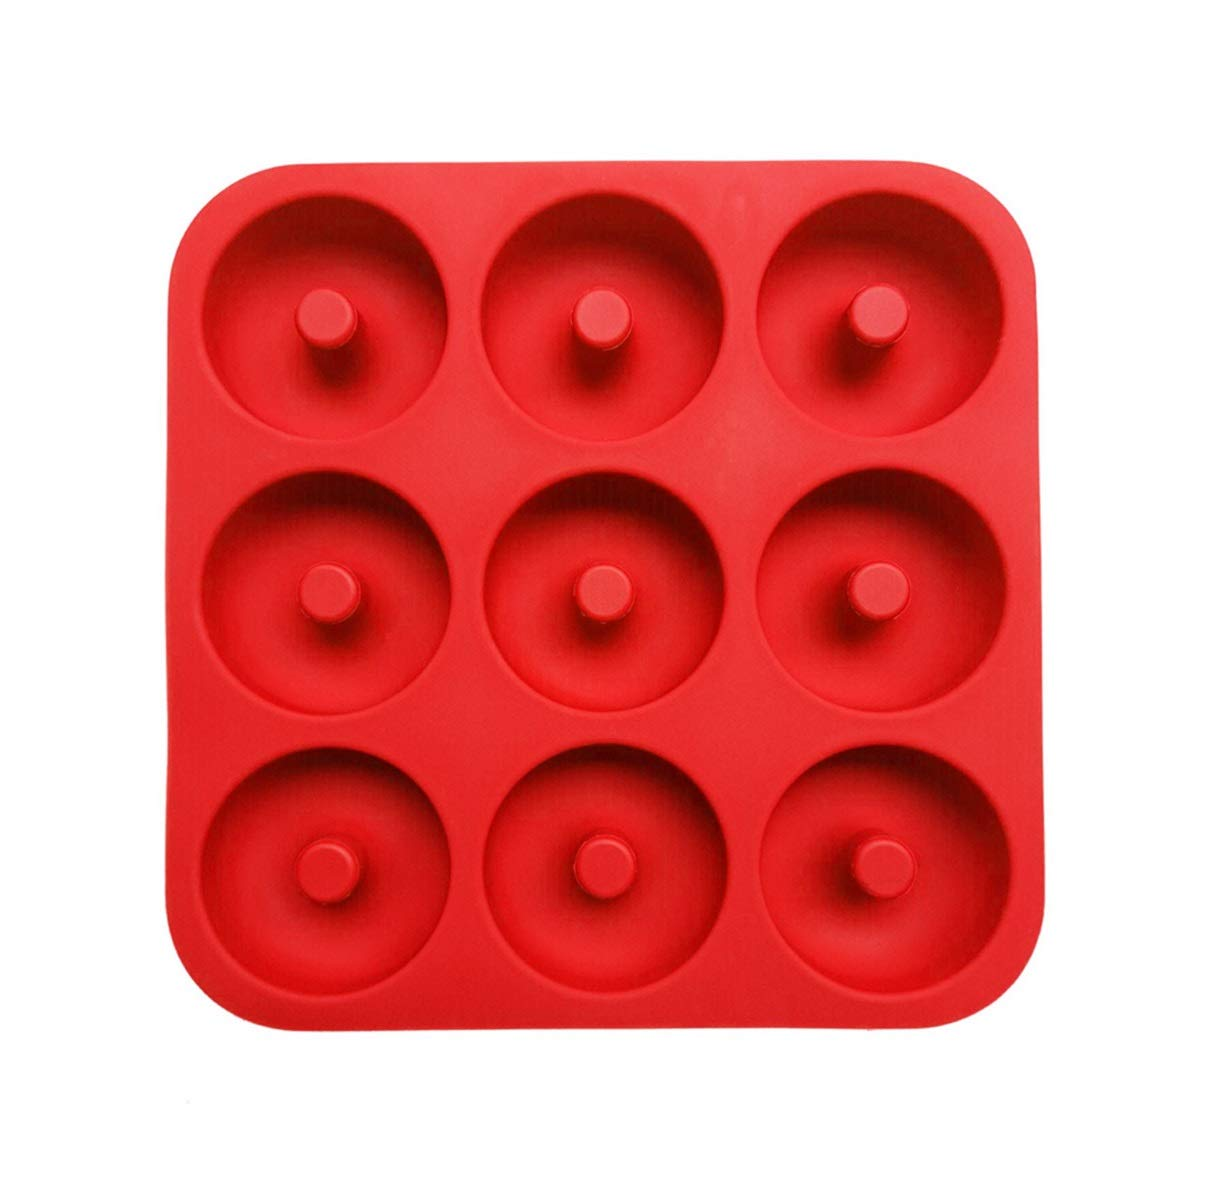 2Packs Silicone Donut Pan, Suntake 9 Holes Non Stick Silicone Doughnut Baking Molds (Red)